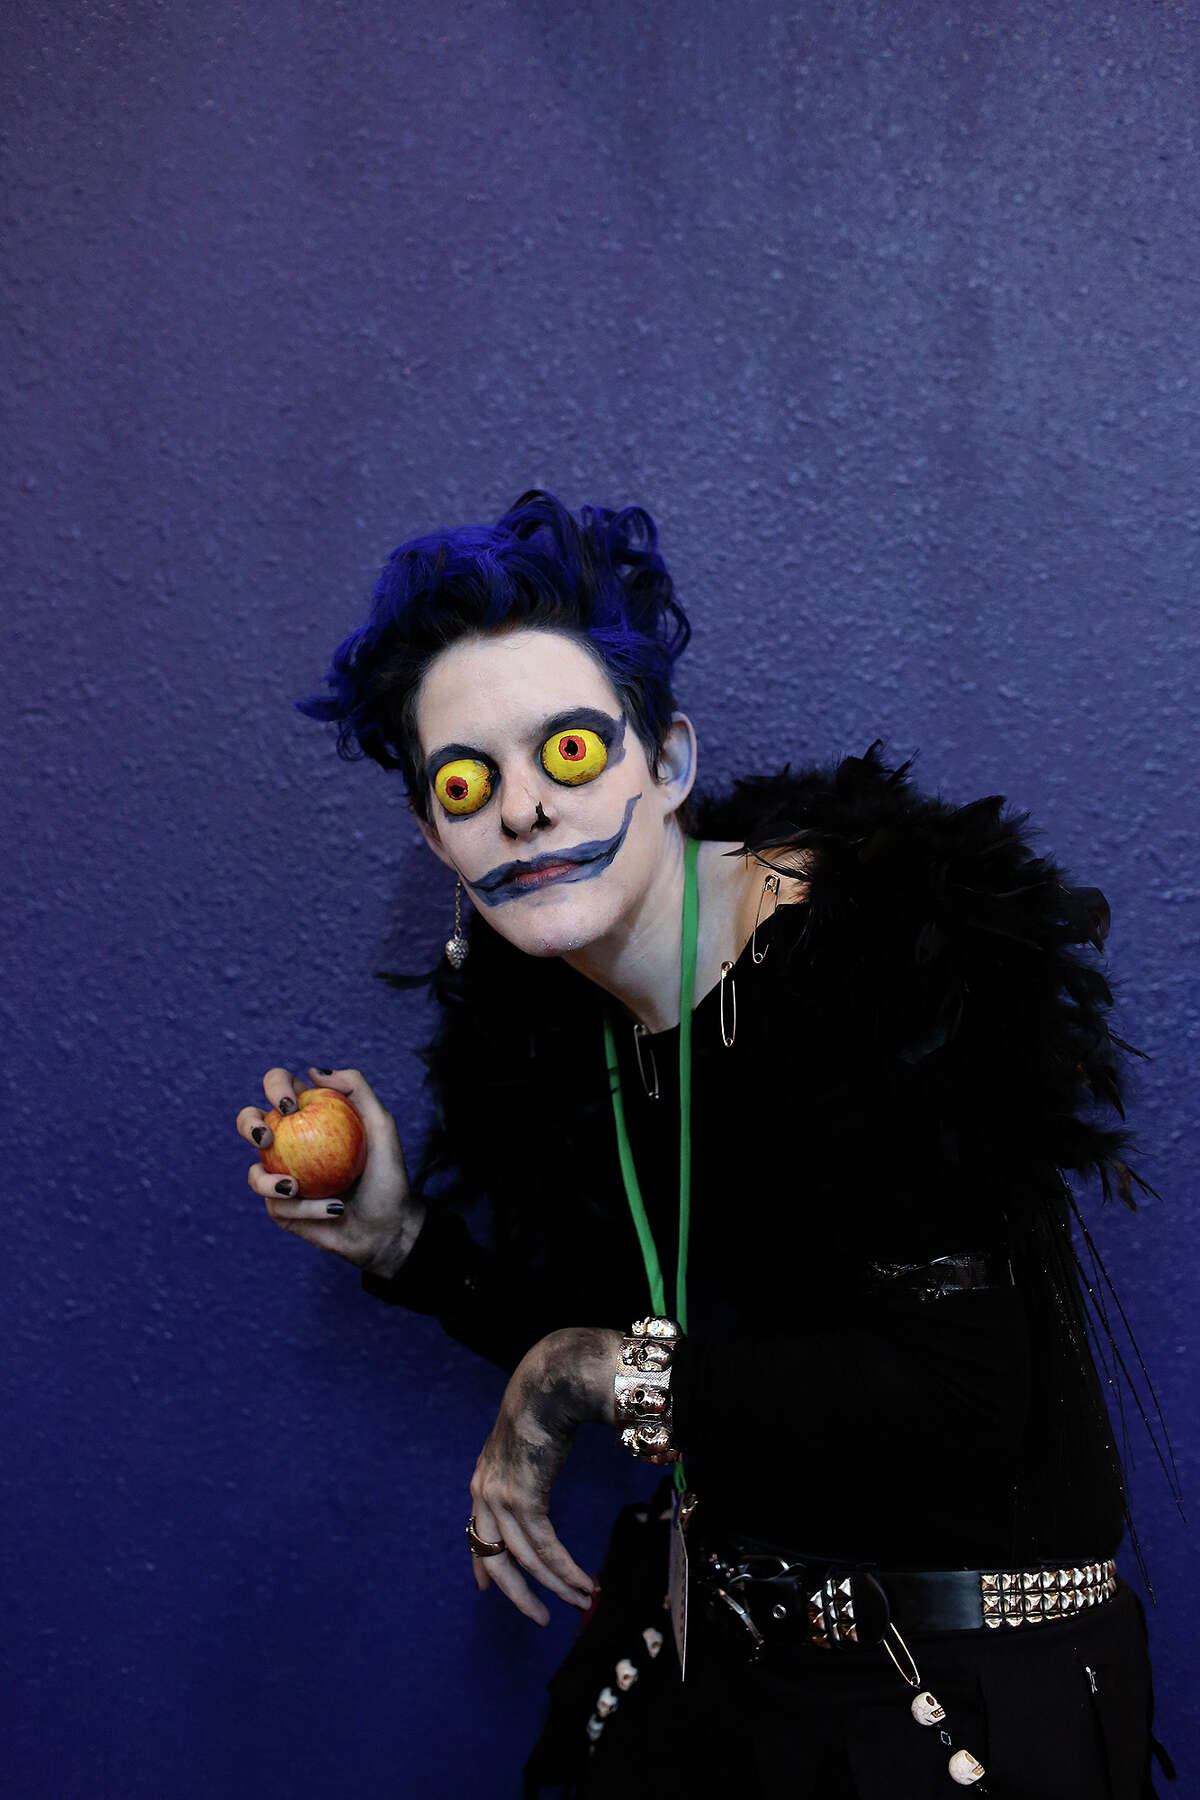 Erin Johnston, of San Antonio, poses as Ryuk from the anime series Death Note during San Japan Sinister 6 at the Henry B. Gonzalez Convention in San Antonio on Saturday, August 17 2013.